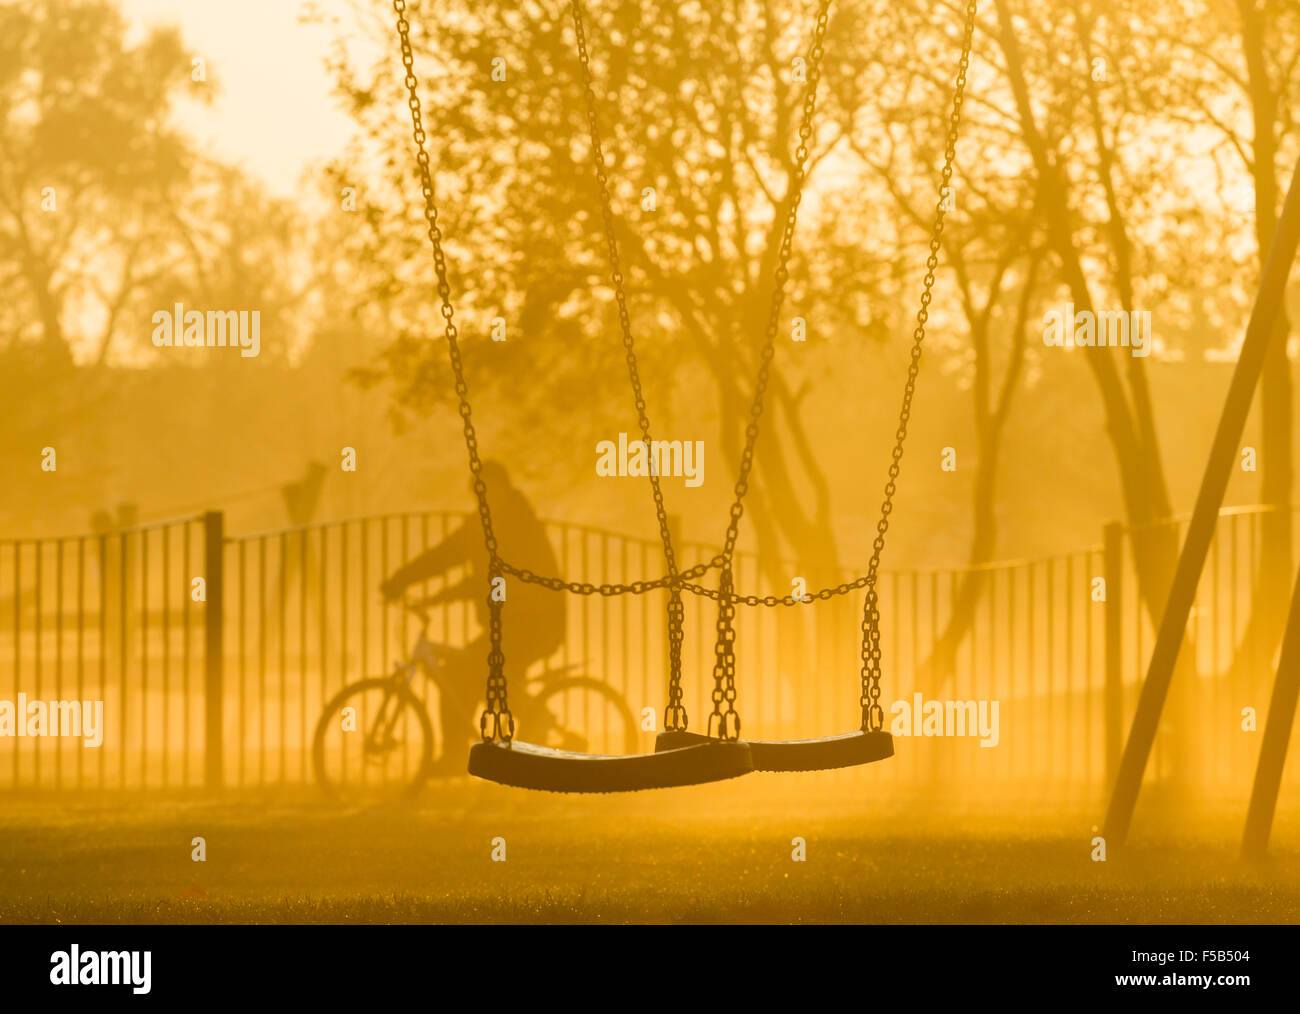 A mature male cycles past swings in public park. UK - Stock Image